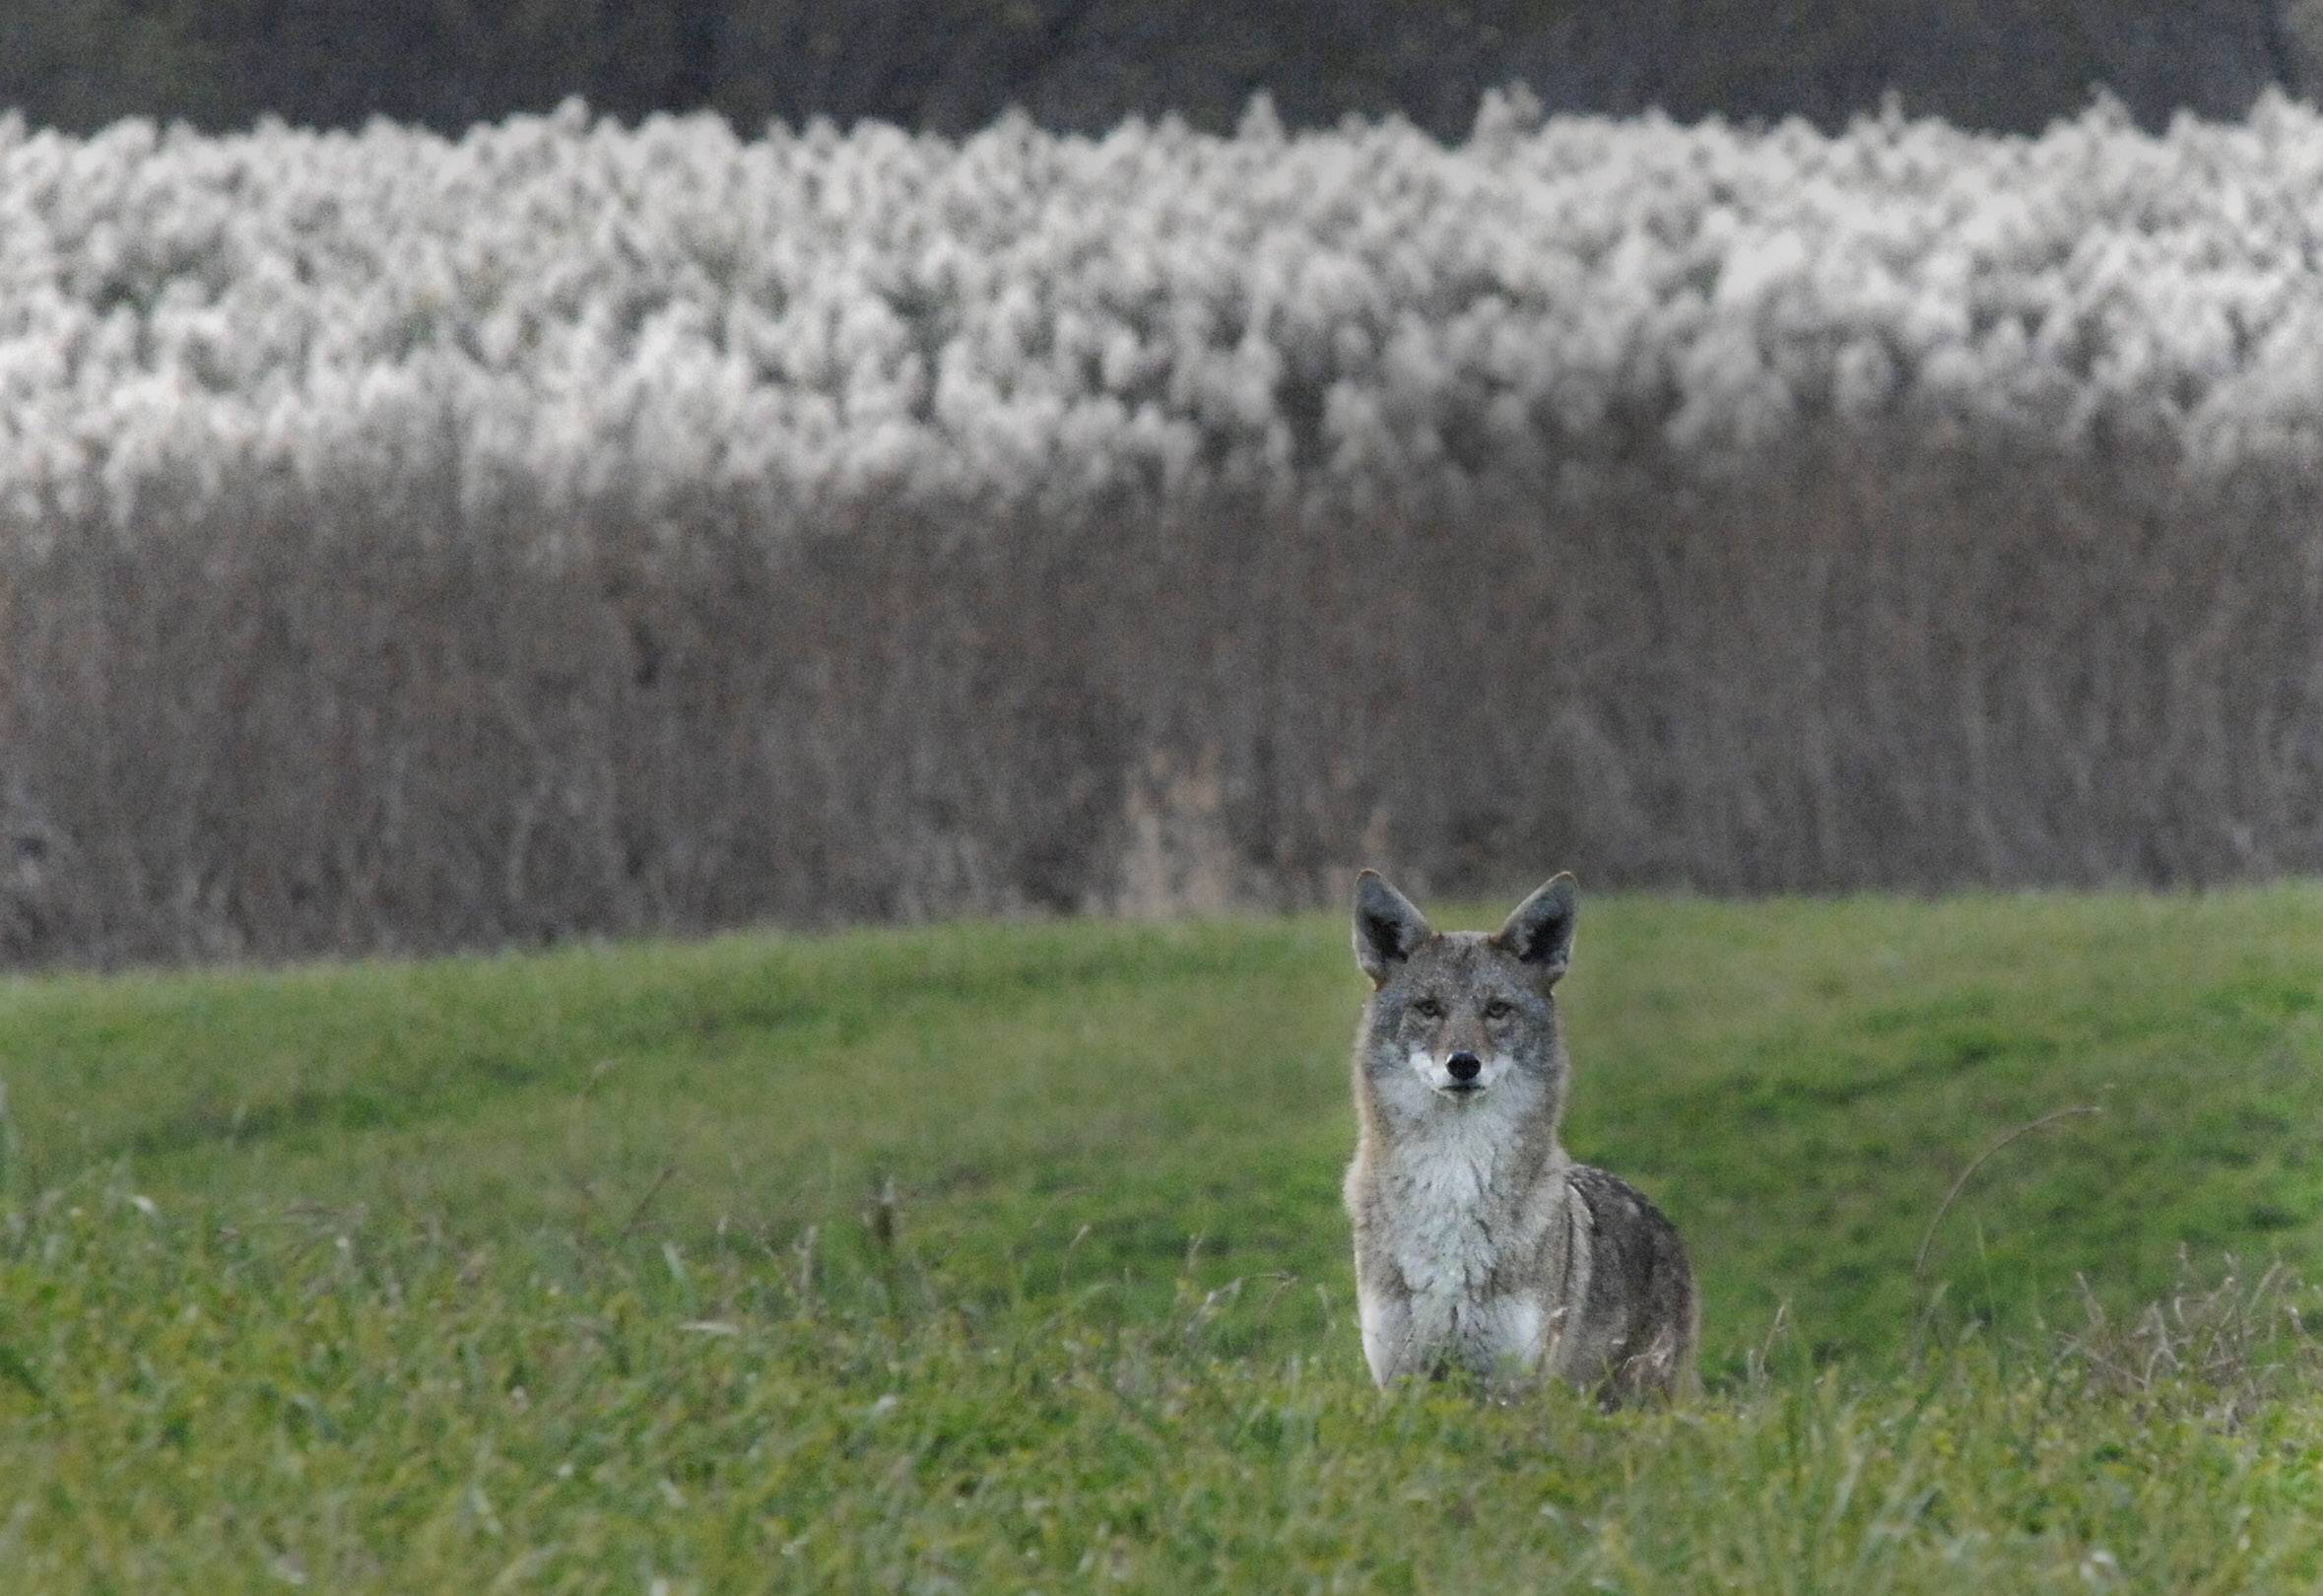 Coyotes, like this one spotted in Wasco in 2011, have become more aggressive Geneva residents say and they want the city council to take action.